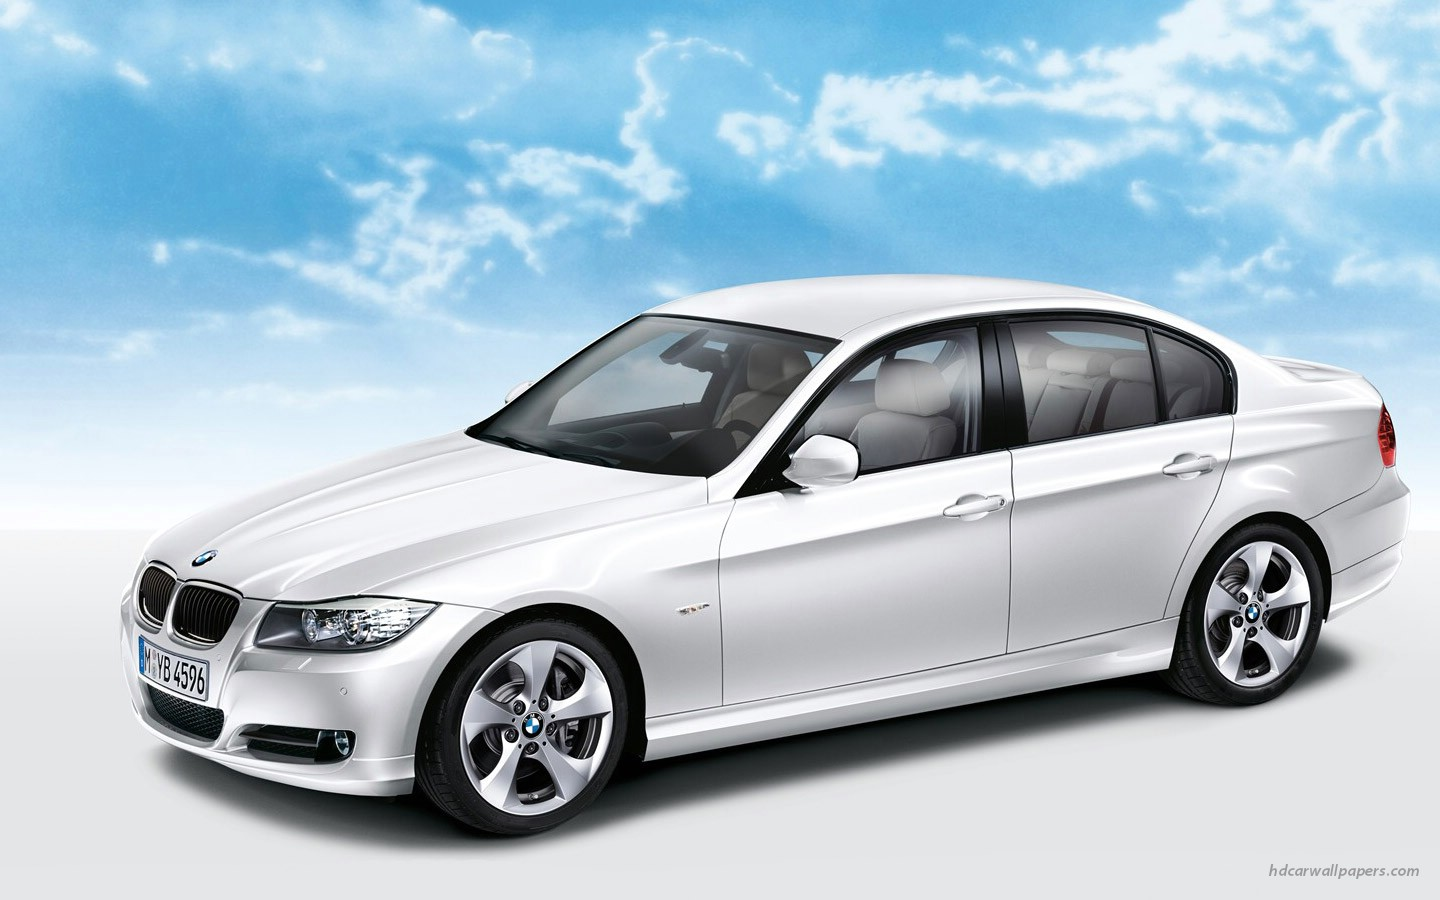 2010 Bmw 320d Efficientdynamics Edition 2 Wallpapers Wallpapers Hd